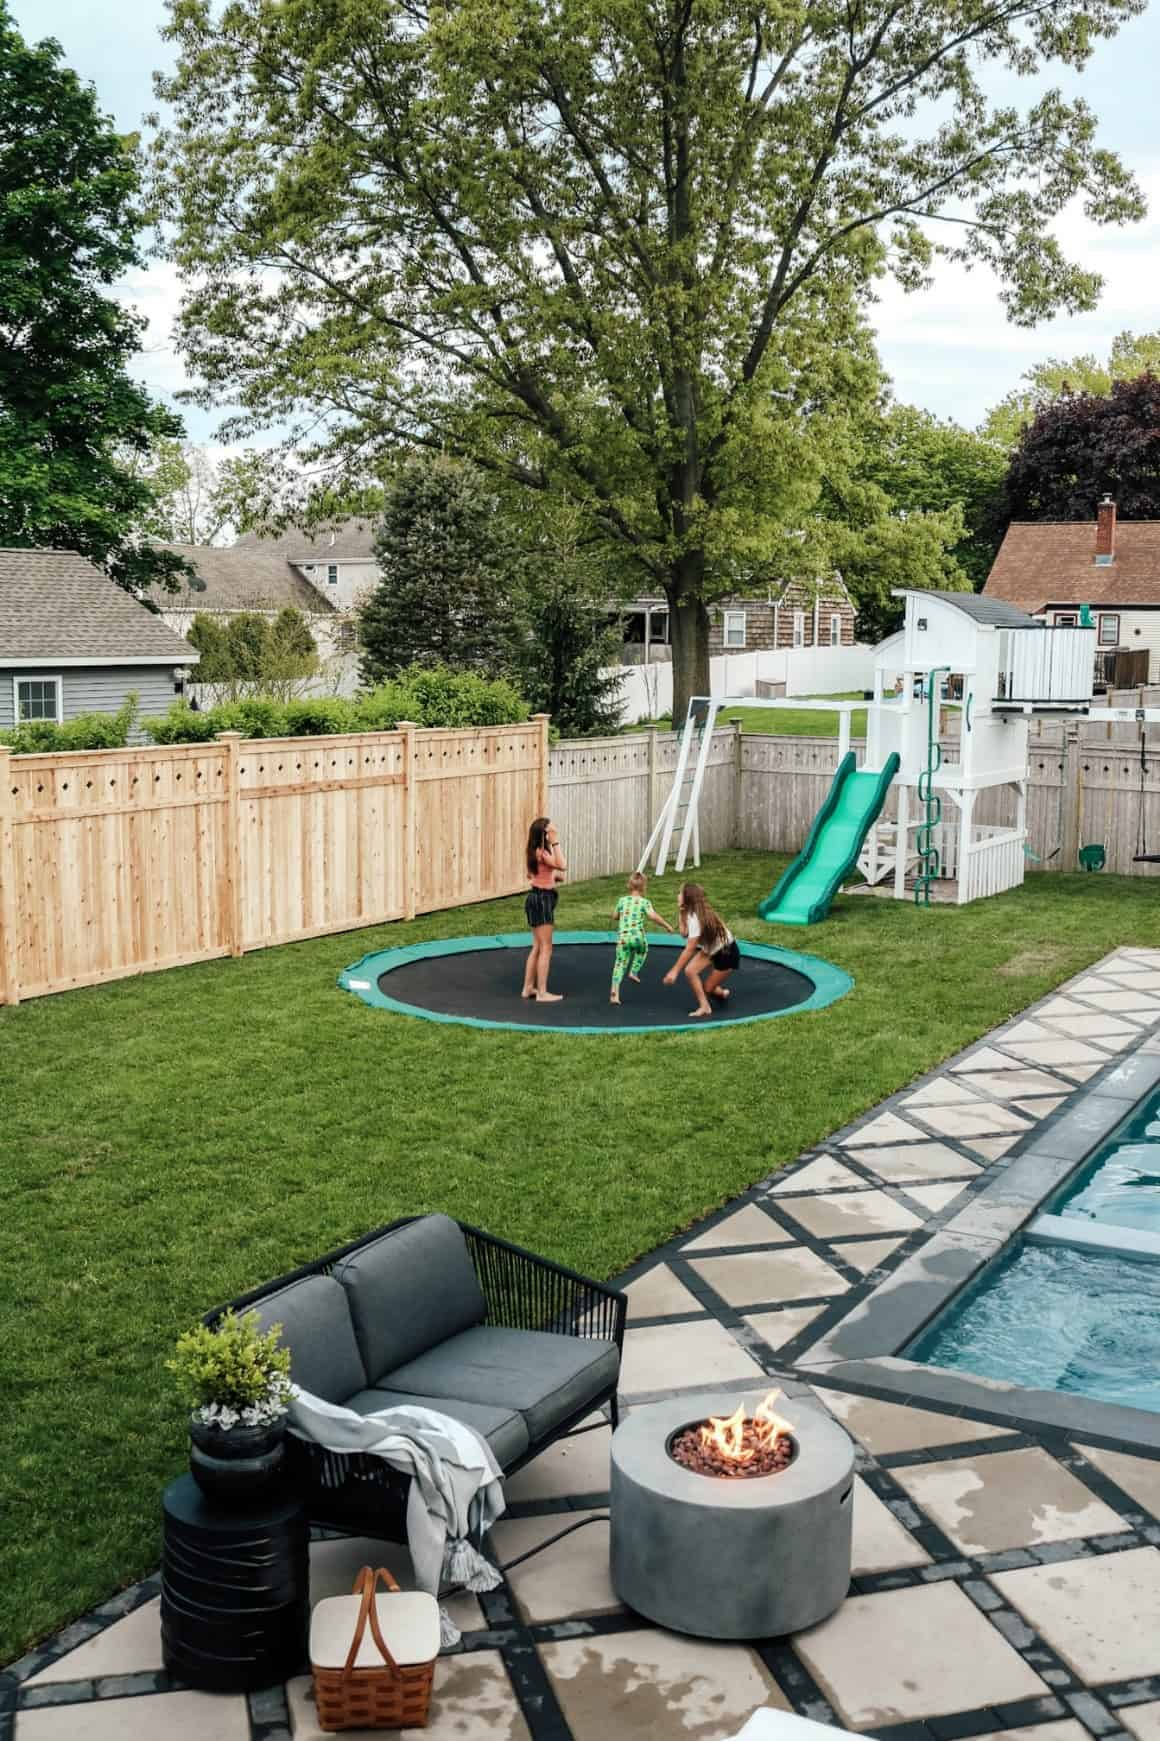 backyard with in ground trampoline next to a pool